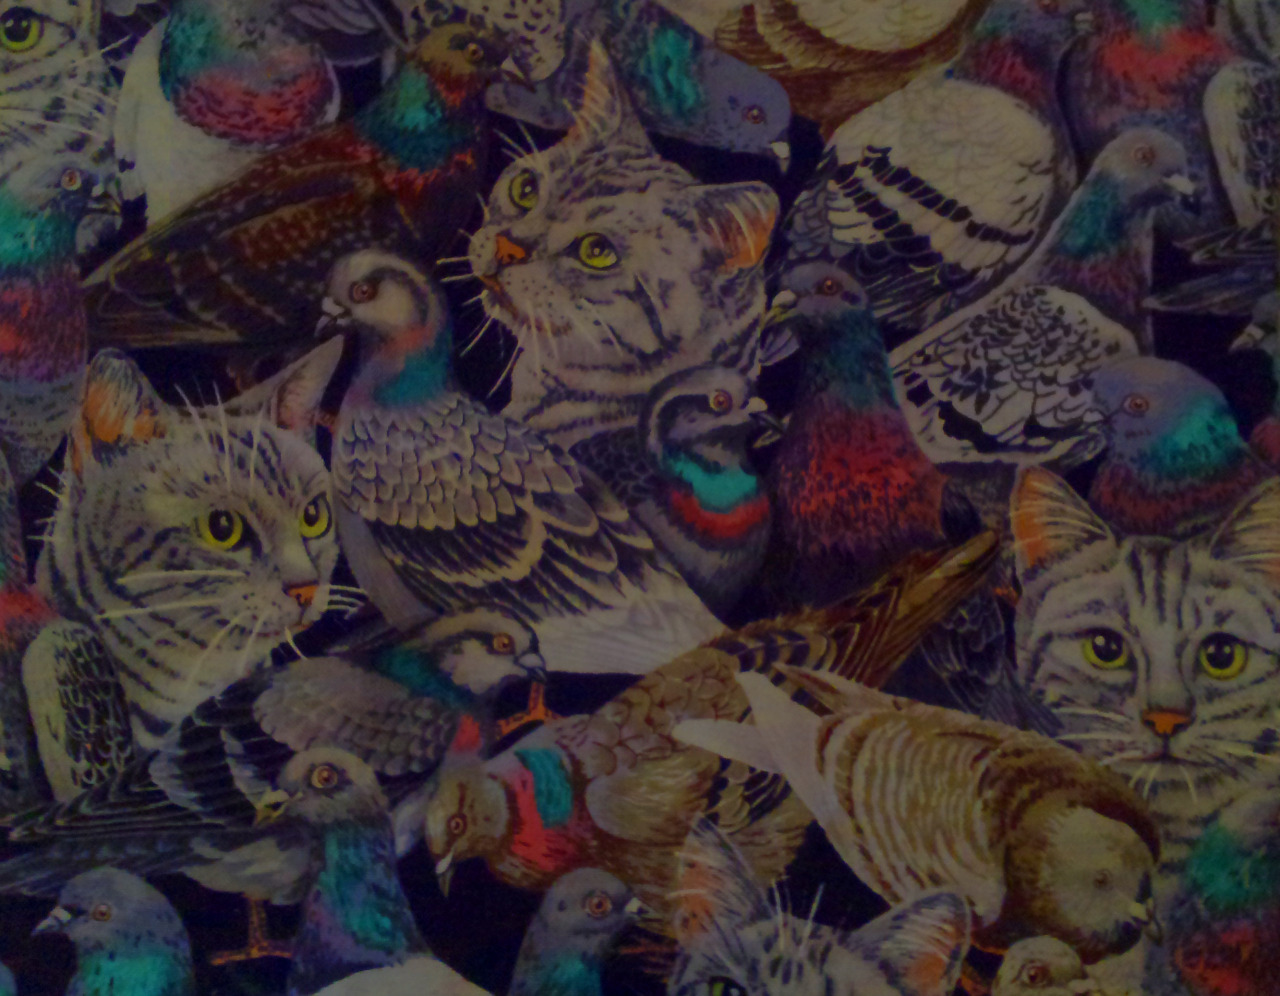 "Large tabby cat and pidgeon remnant pattern piece i had, scanned on photoshop to make a pattern. Similar to the Rip n dip nermal print which I thought was pretty sick. The sun tzu design is for the irony of the cats and pidgeons calm together as it fits a famous war strategy of his ""keep your friends close, but your enemies closer"" Sun Tzu was a chinese war general in 500BC."